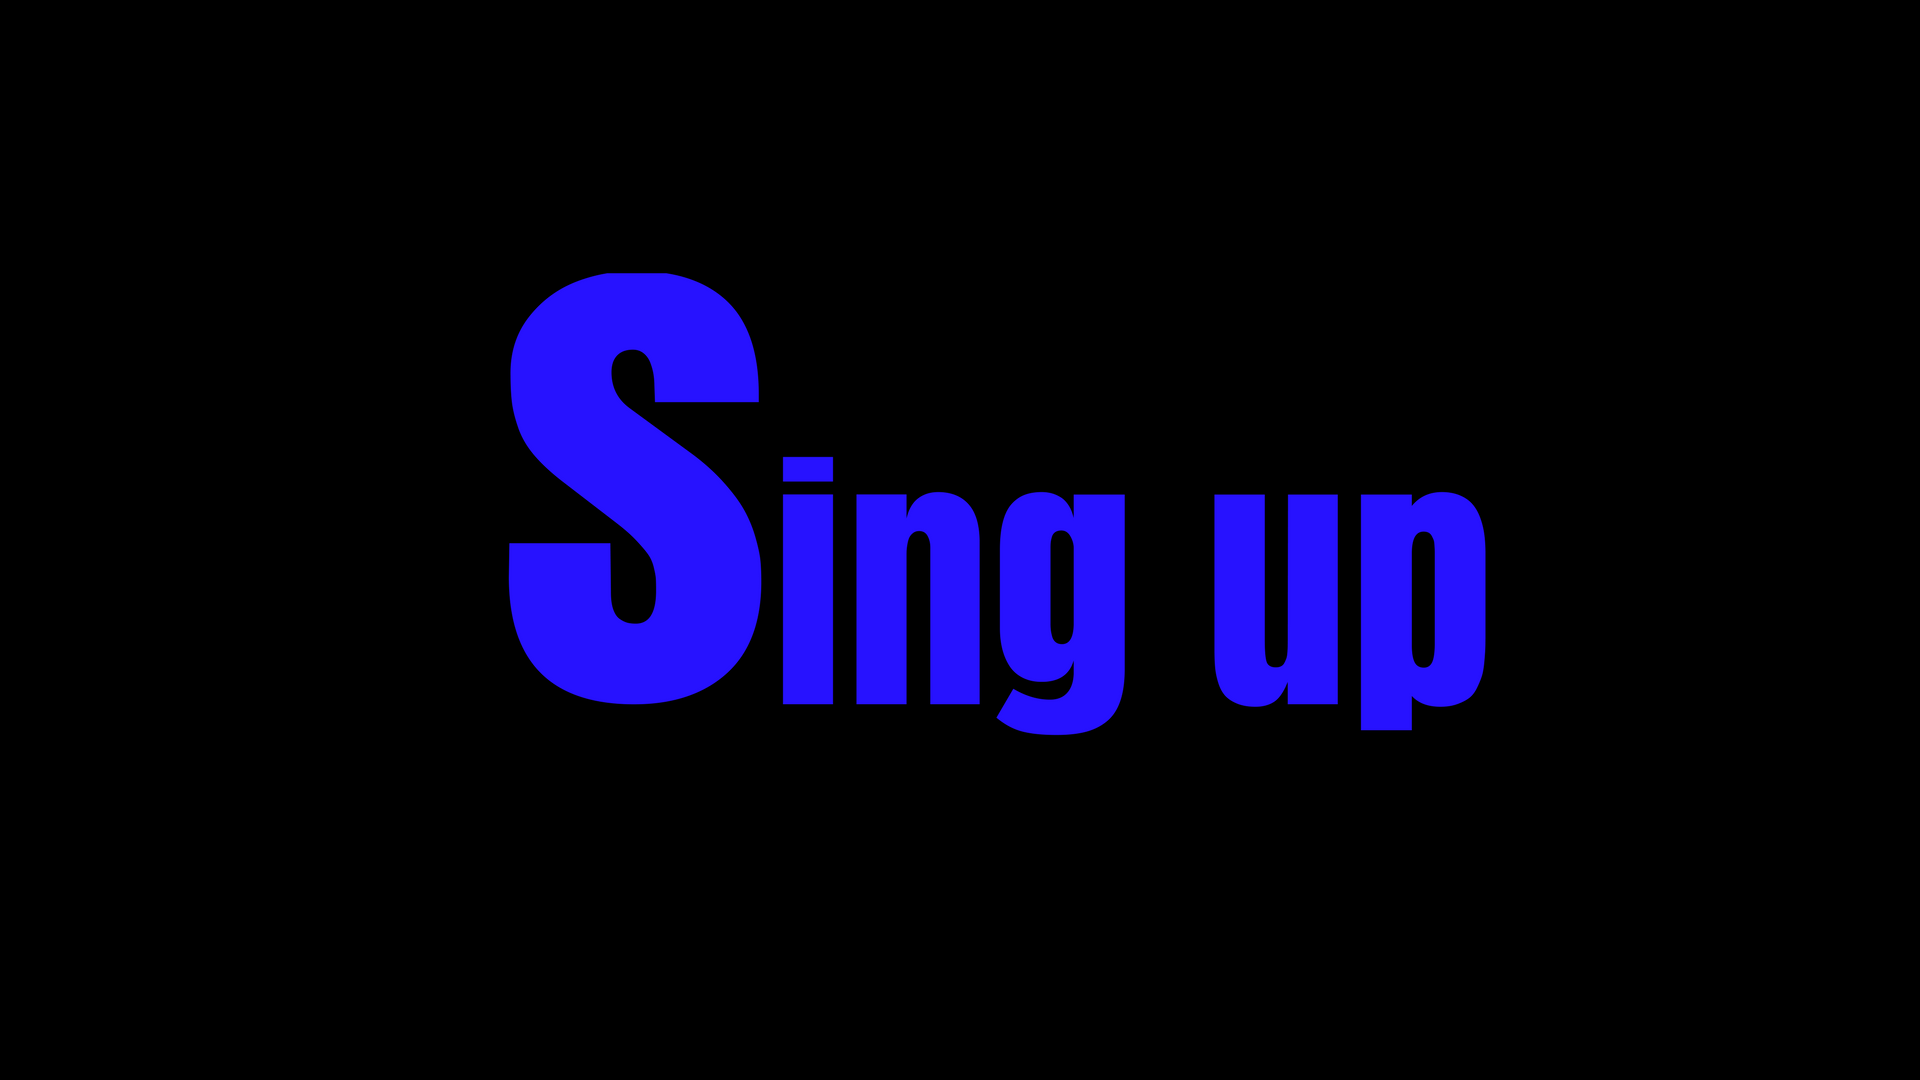 send 15 Sing Up To Your Referral Link or any social site singup